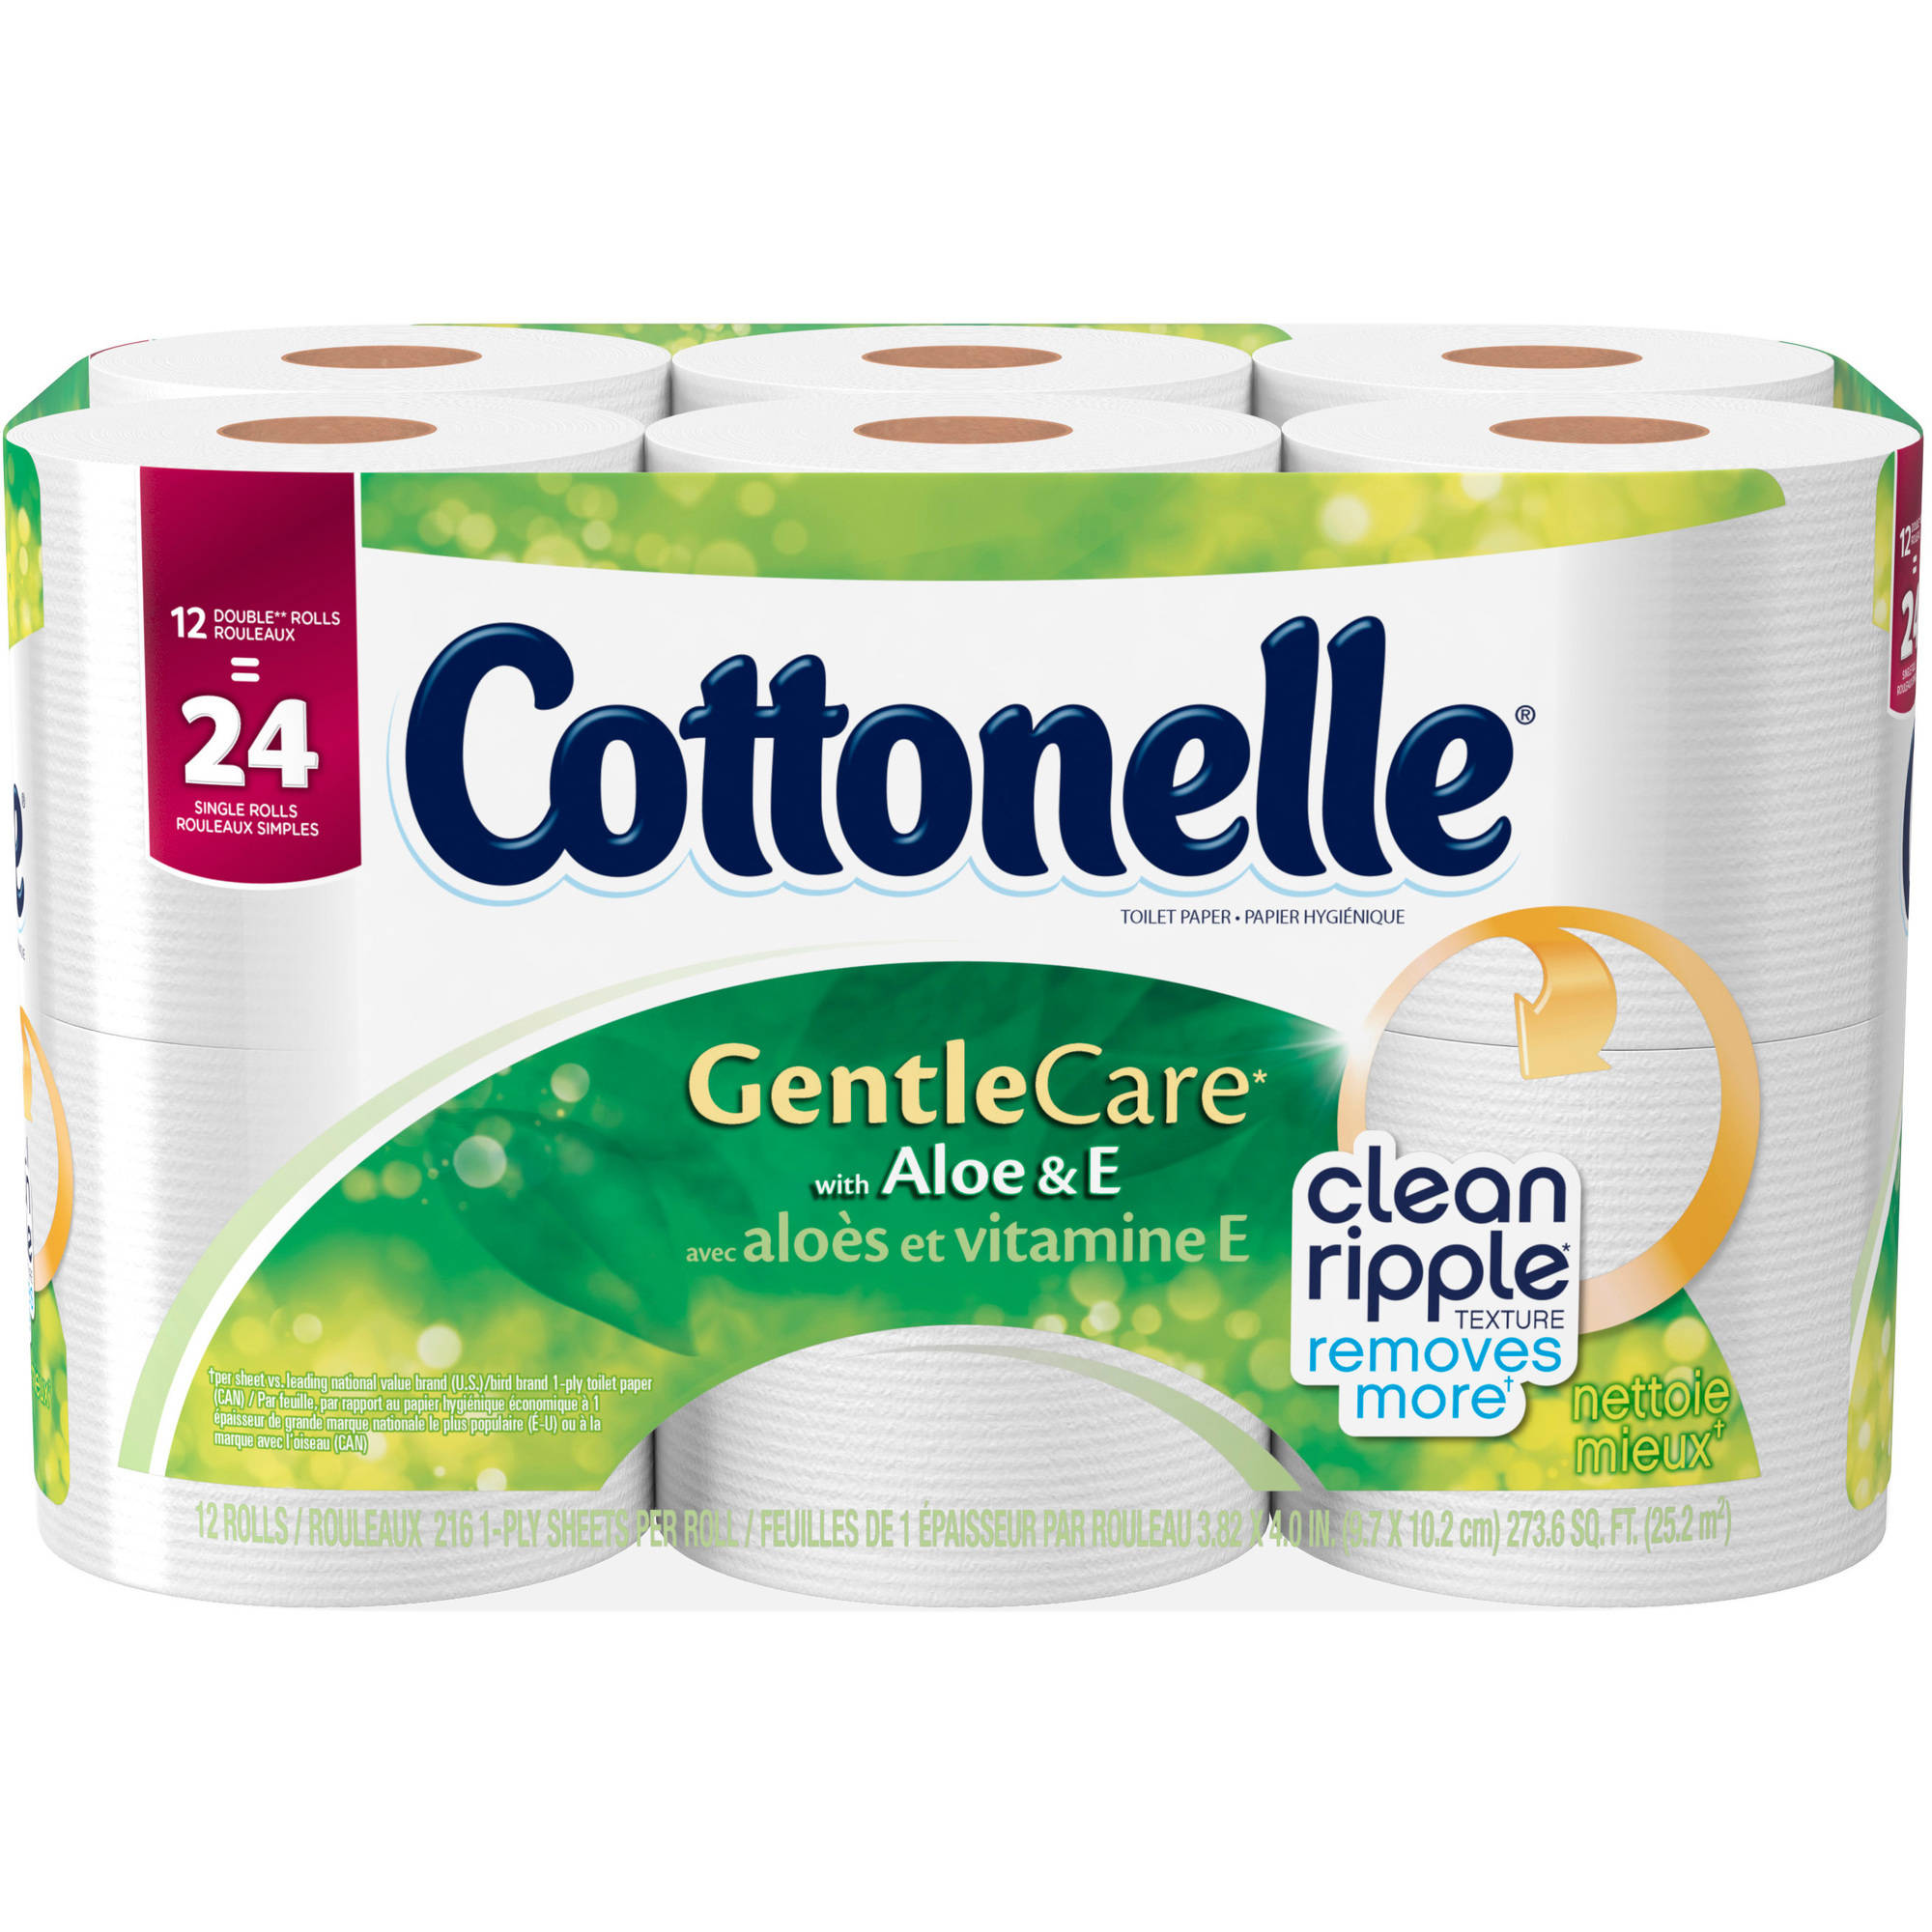 Cottonelle Gentle Care with Aloe & E Double Roll Toilet Paper, 216 sheets, 12 count